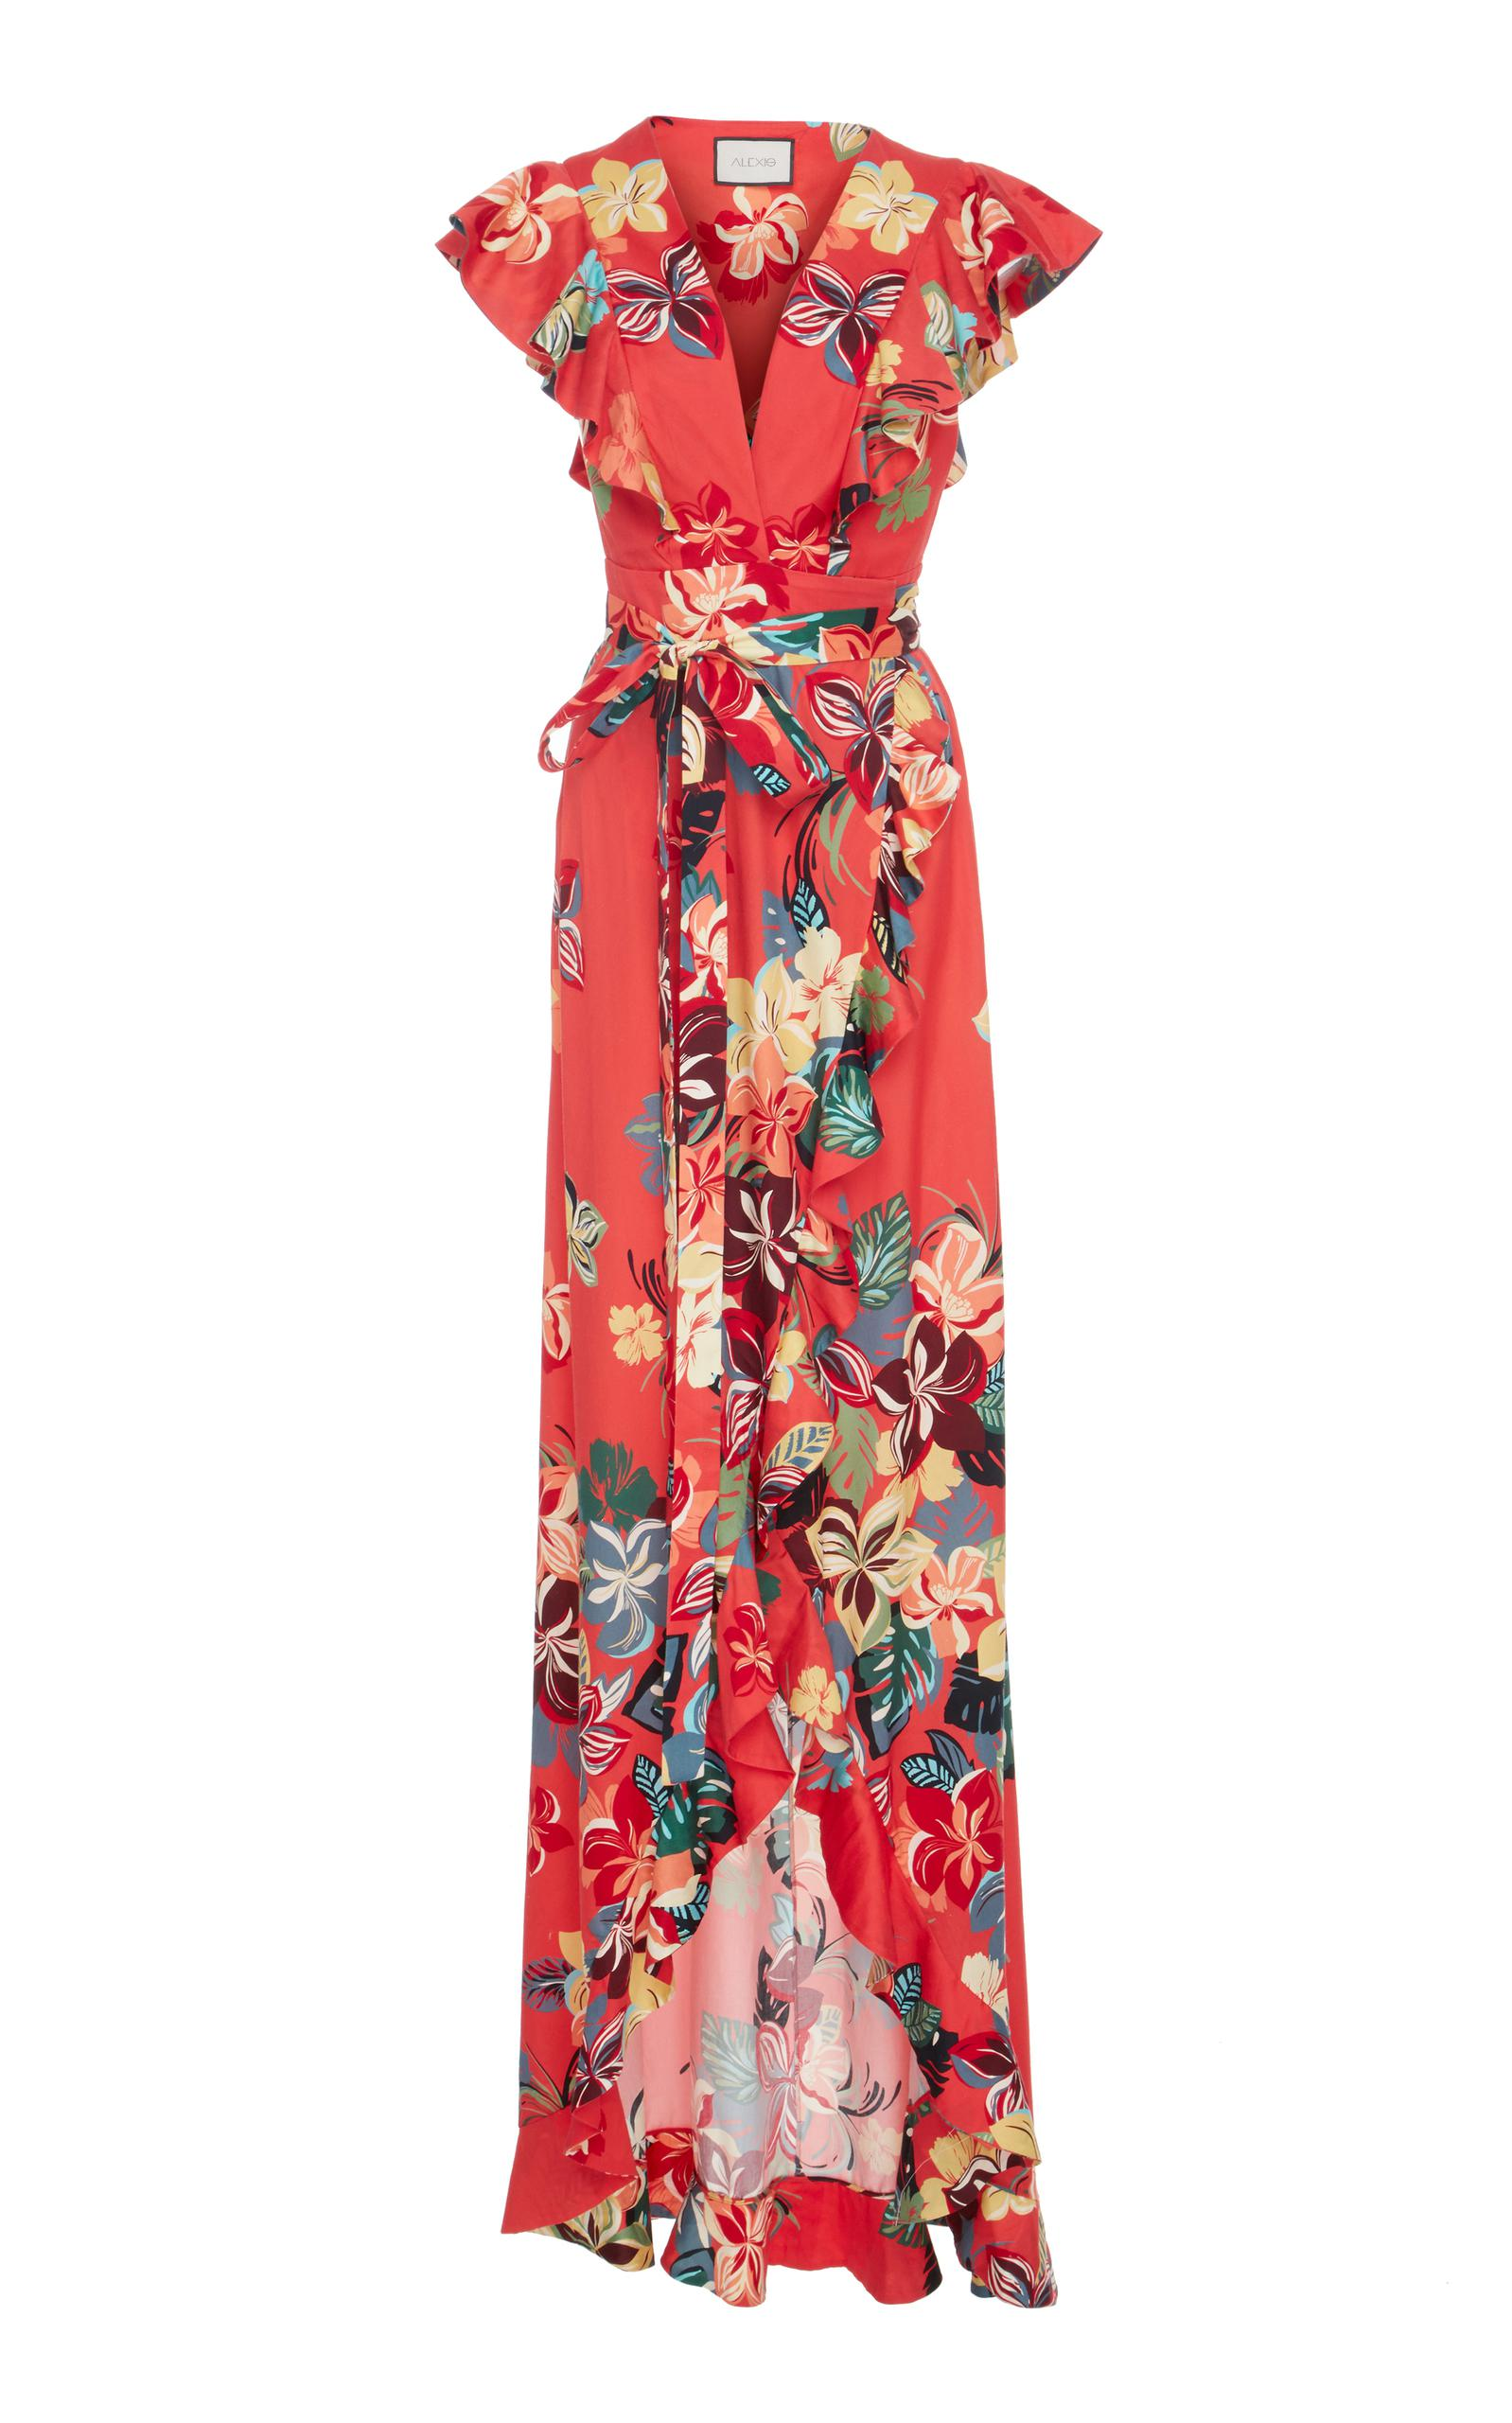 Lyst Alexis Janna Floral Print Dress In Red